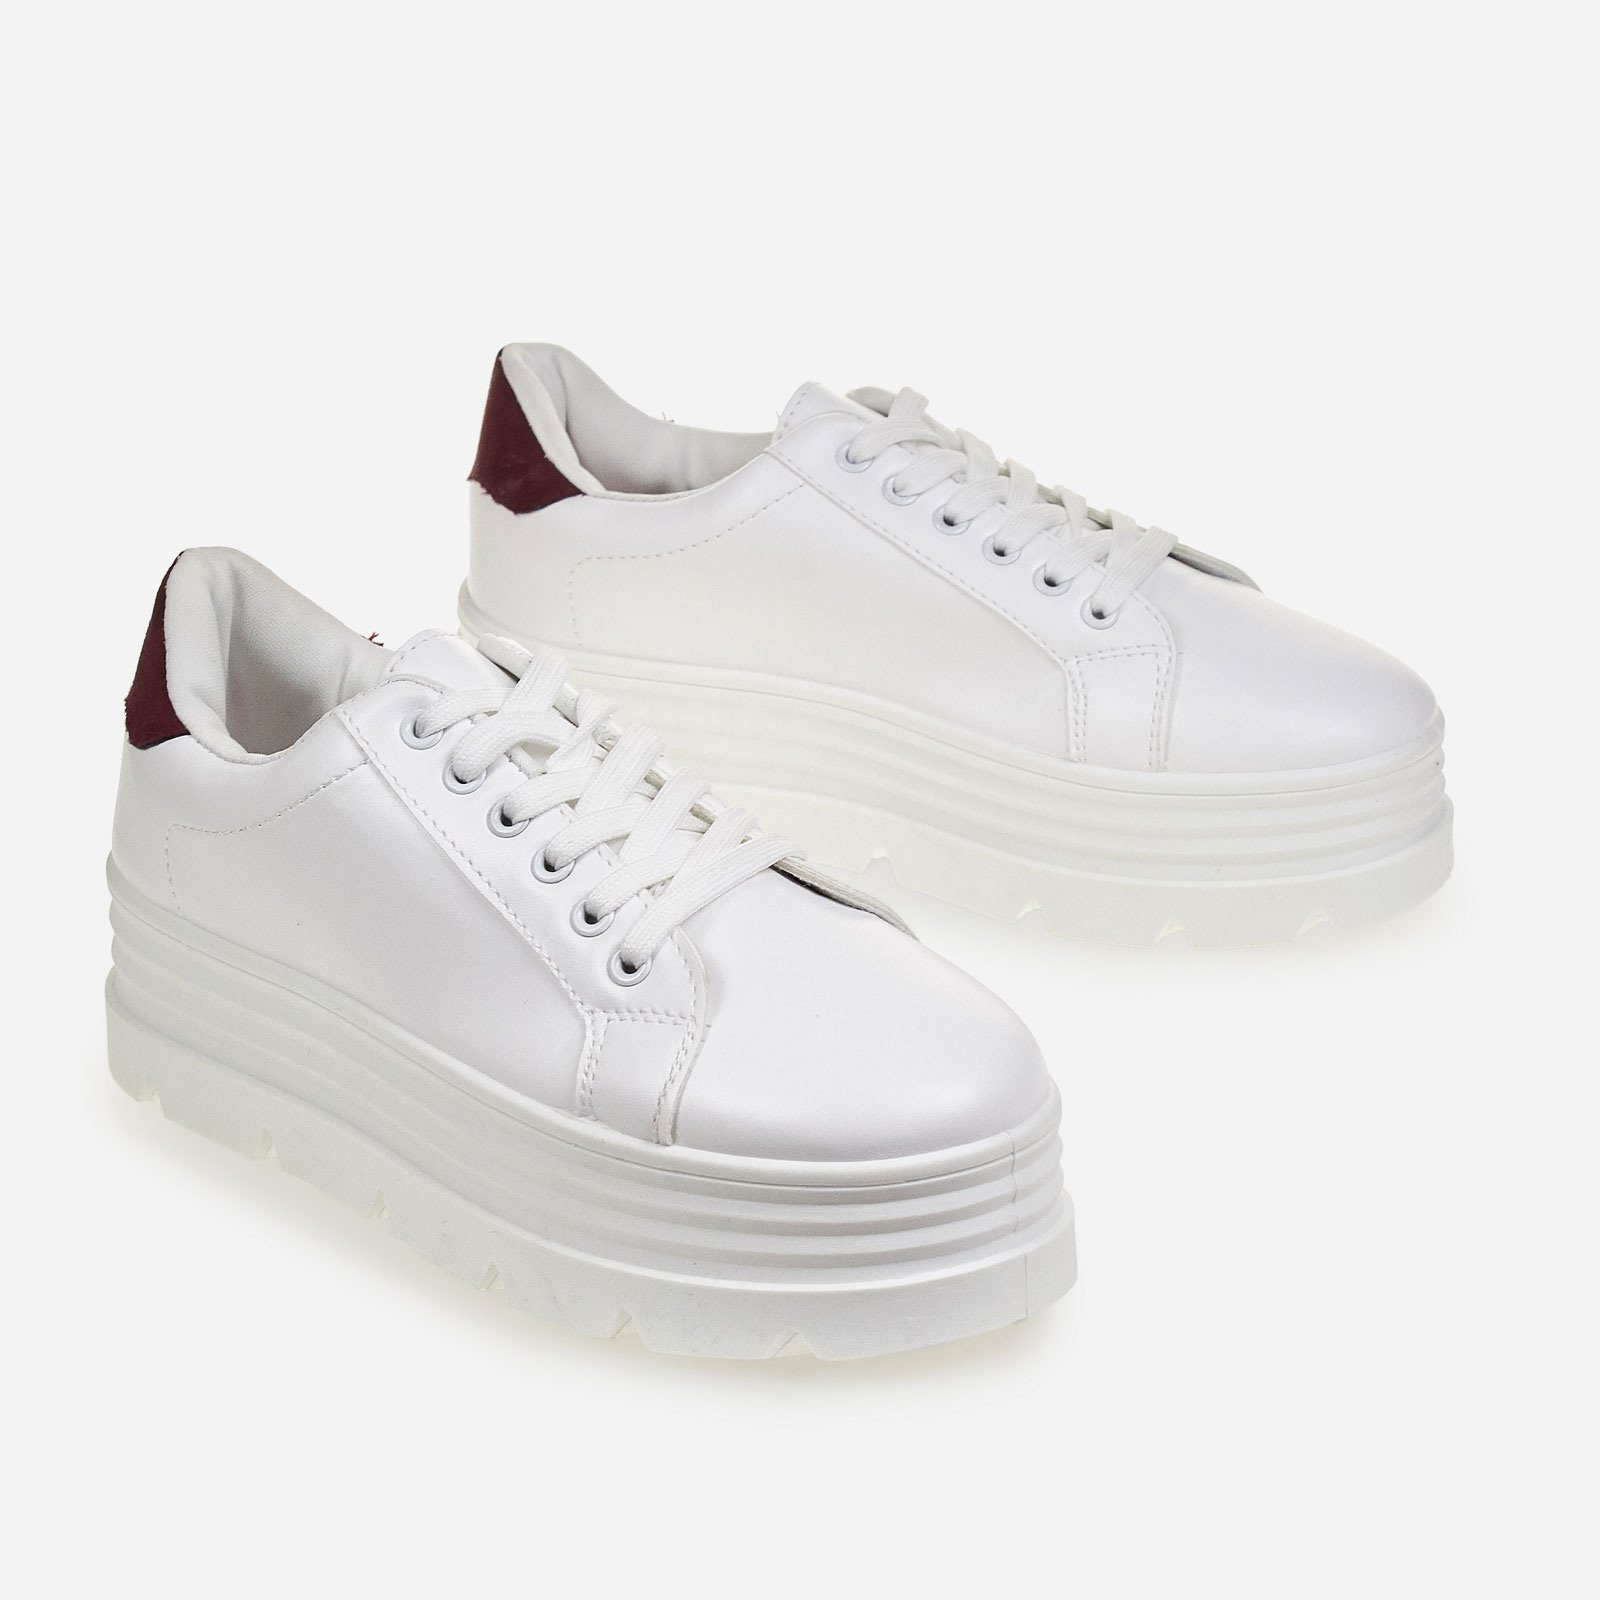 Fierce Burgundy Heel Tab Platform Trainer In White Faux Leather